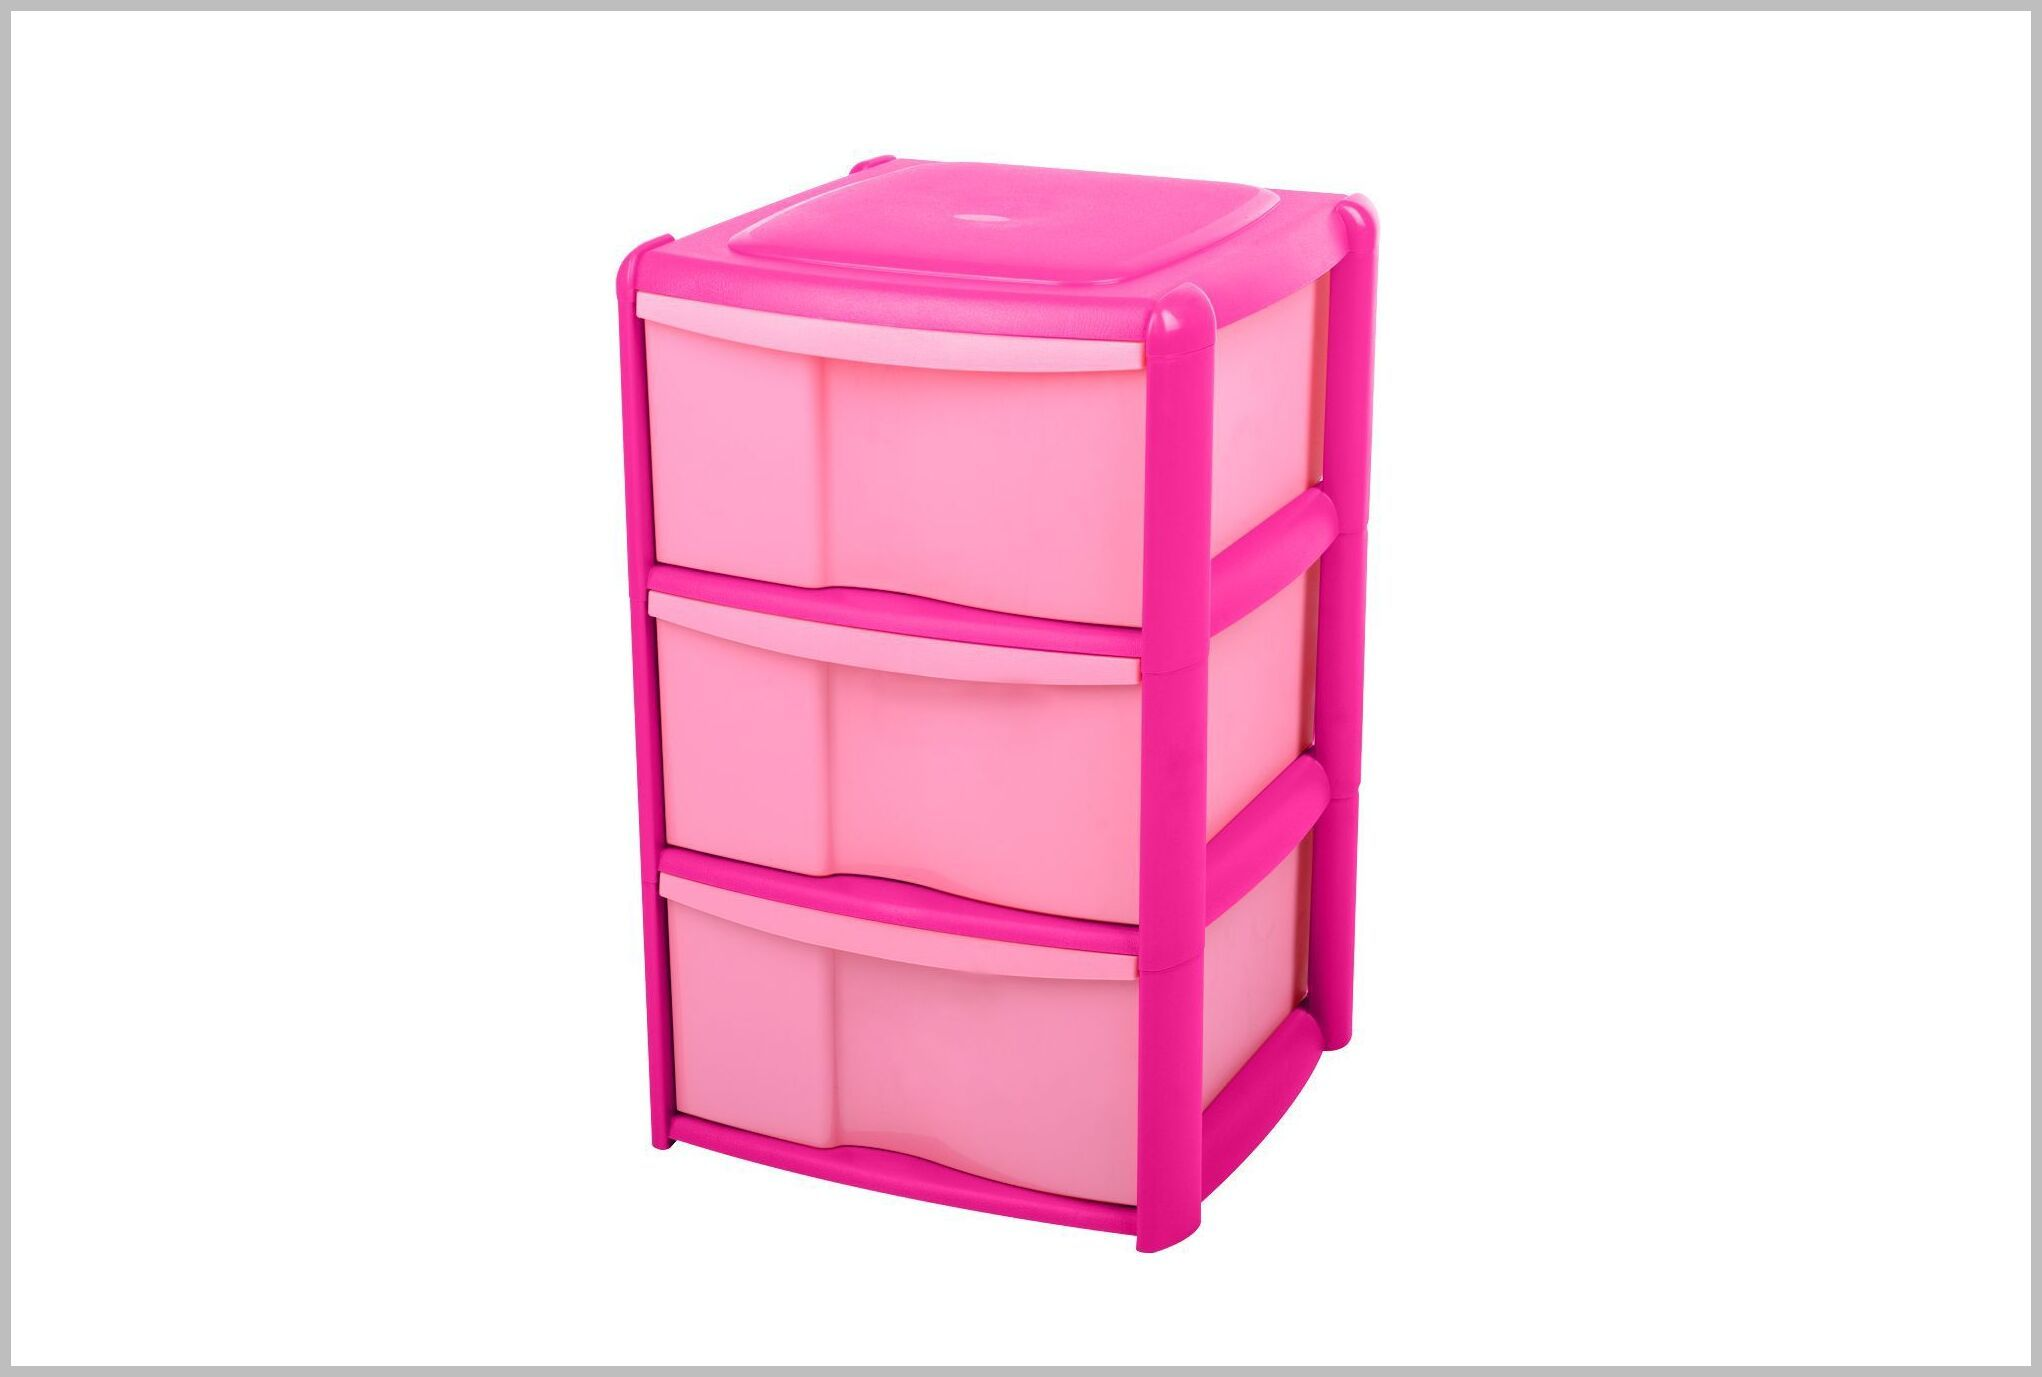 32 Reference Of Pink Bathroom Storage Drawers In 2020 Plastic Drawers Drawer Unit Bathroom Drawer Storage